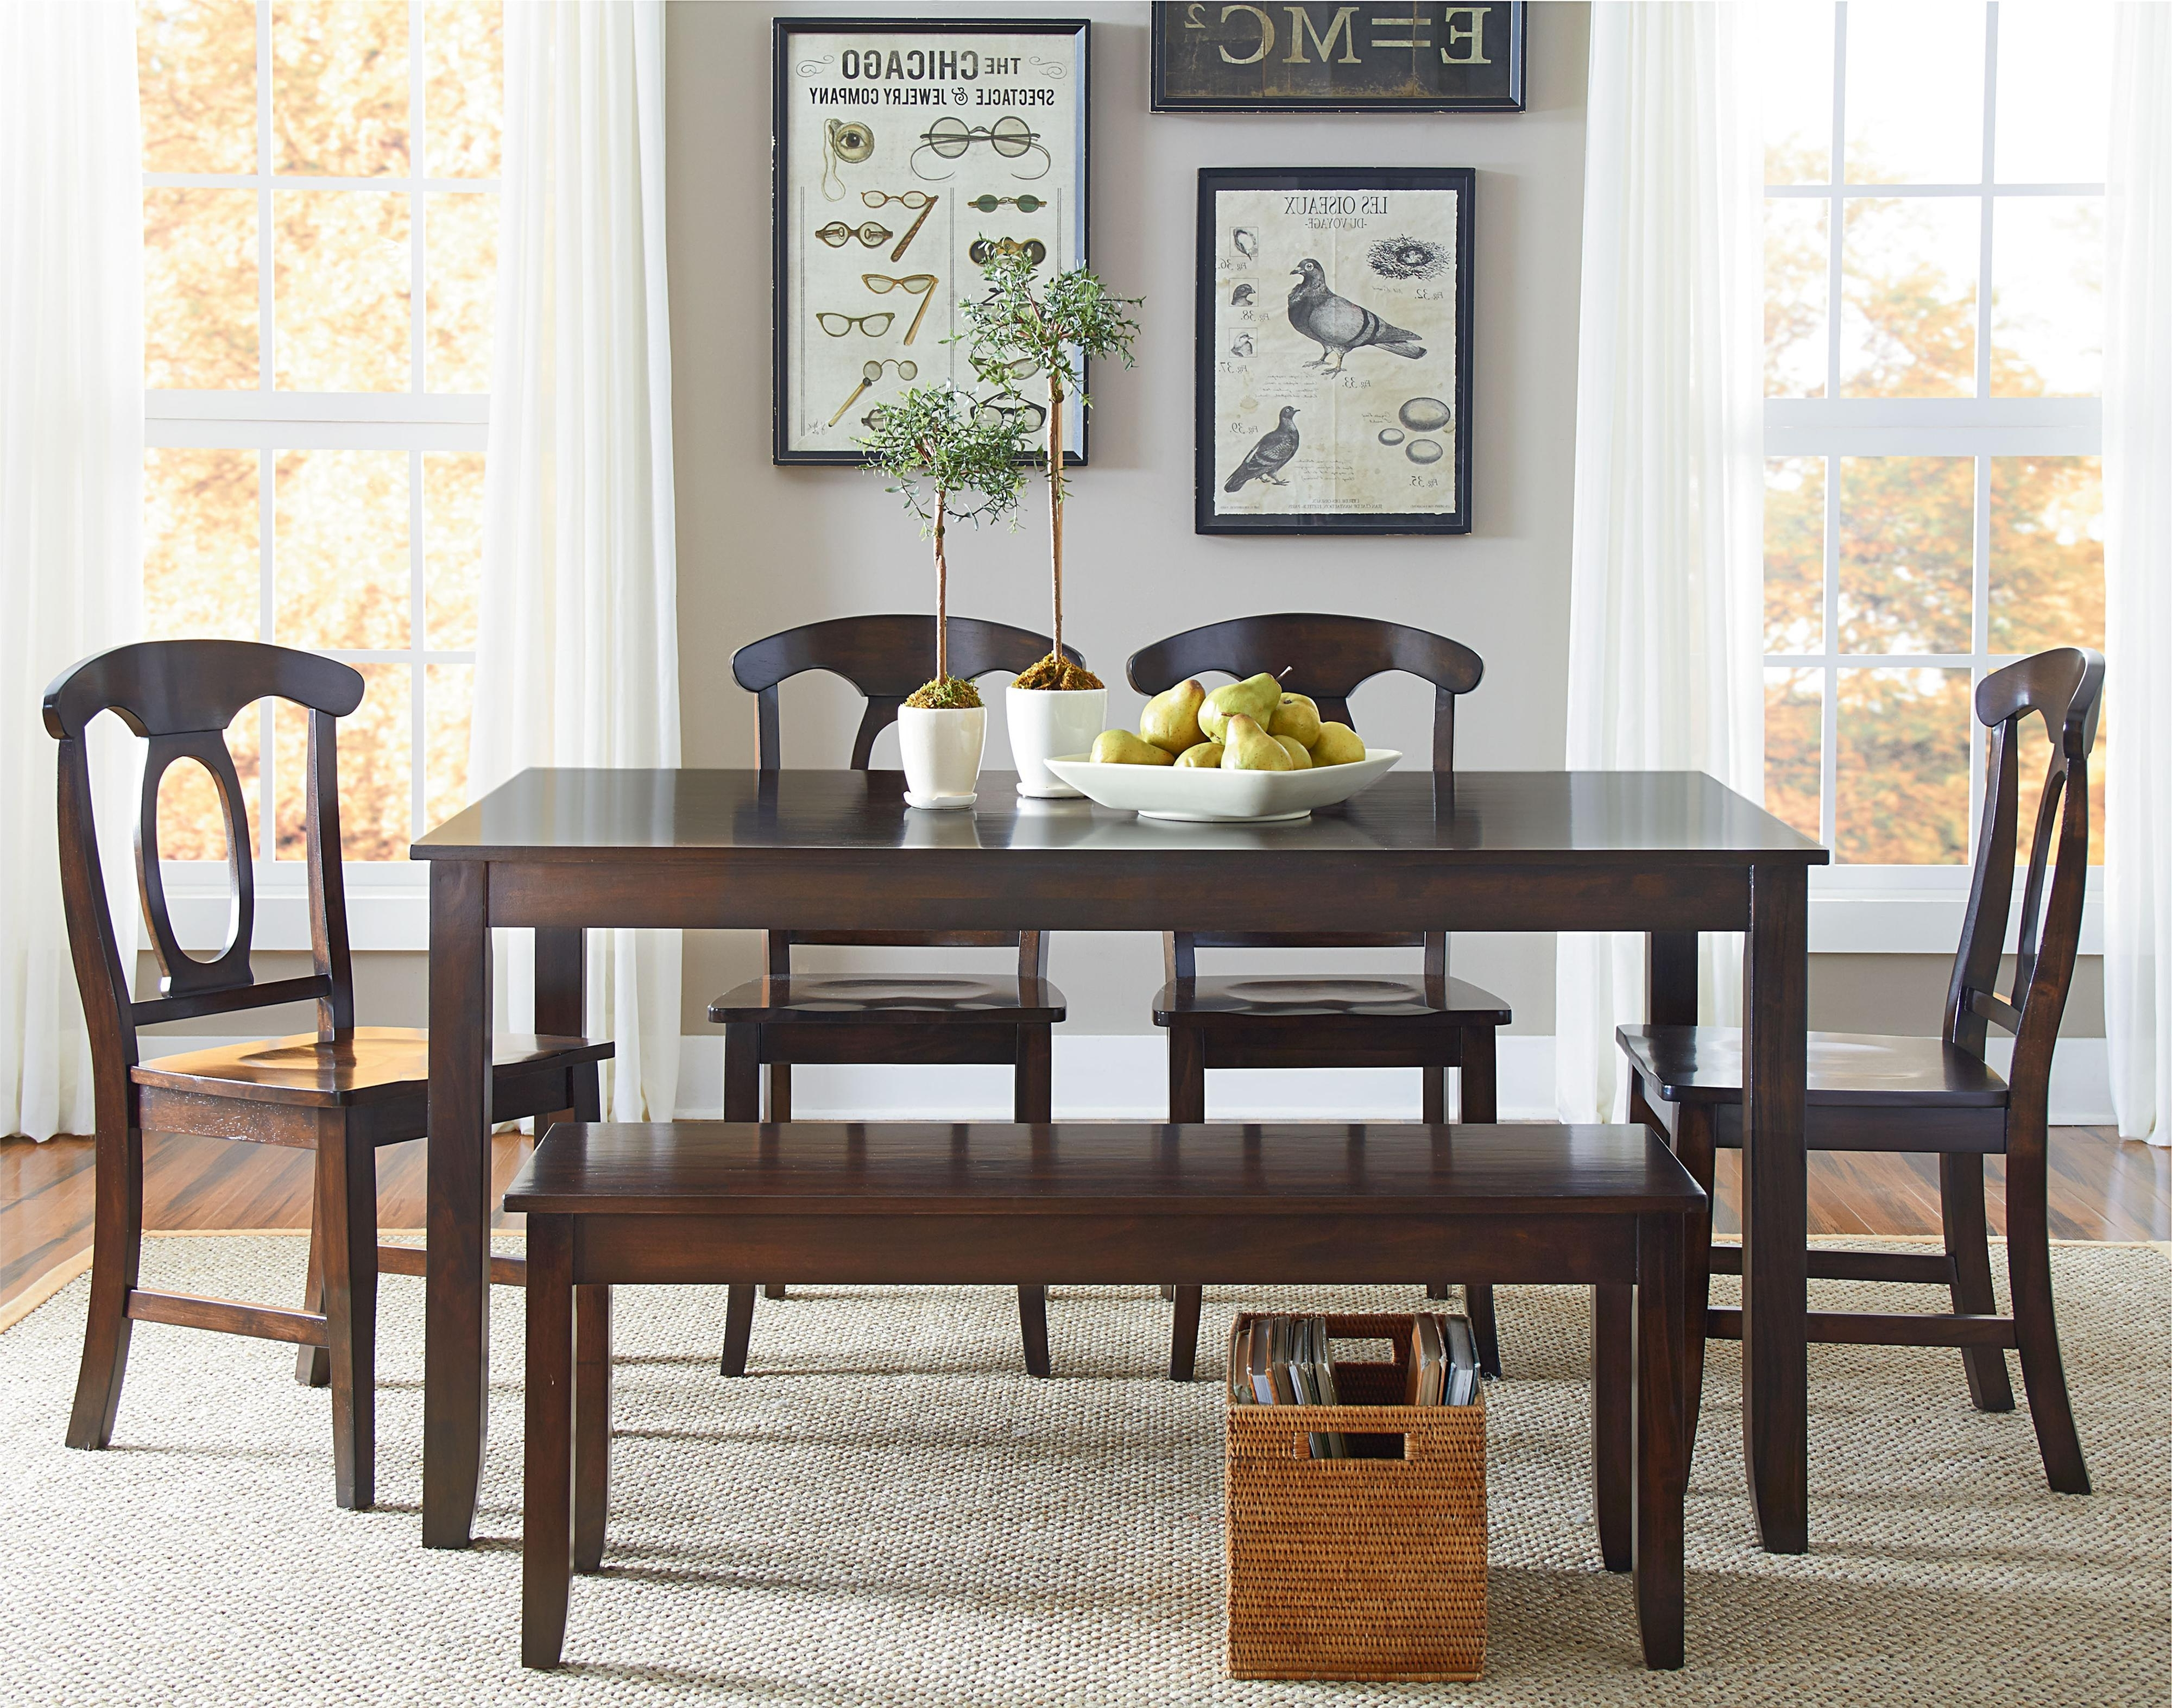 Favorite Standard Furniture Larkin 6 Piece Dining Table Set With Open Oval Intended For Sofa Chairs With Dining Table (View 4 of 15)